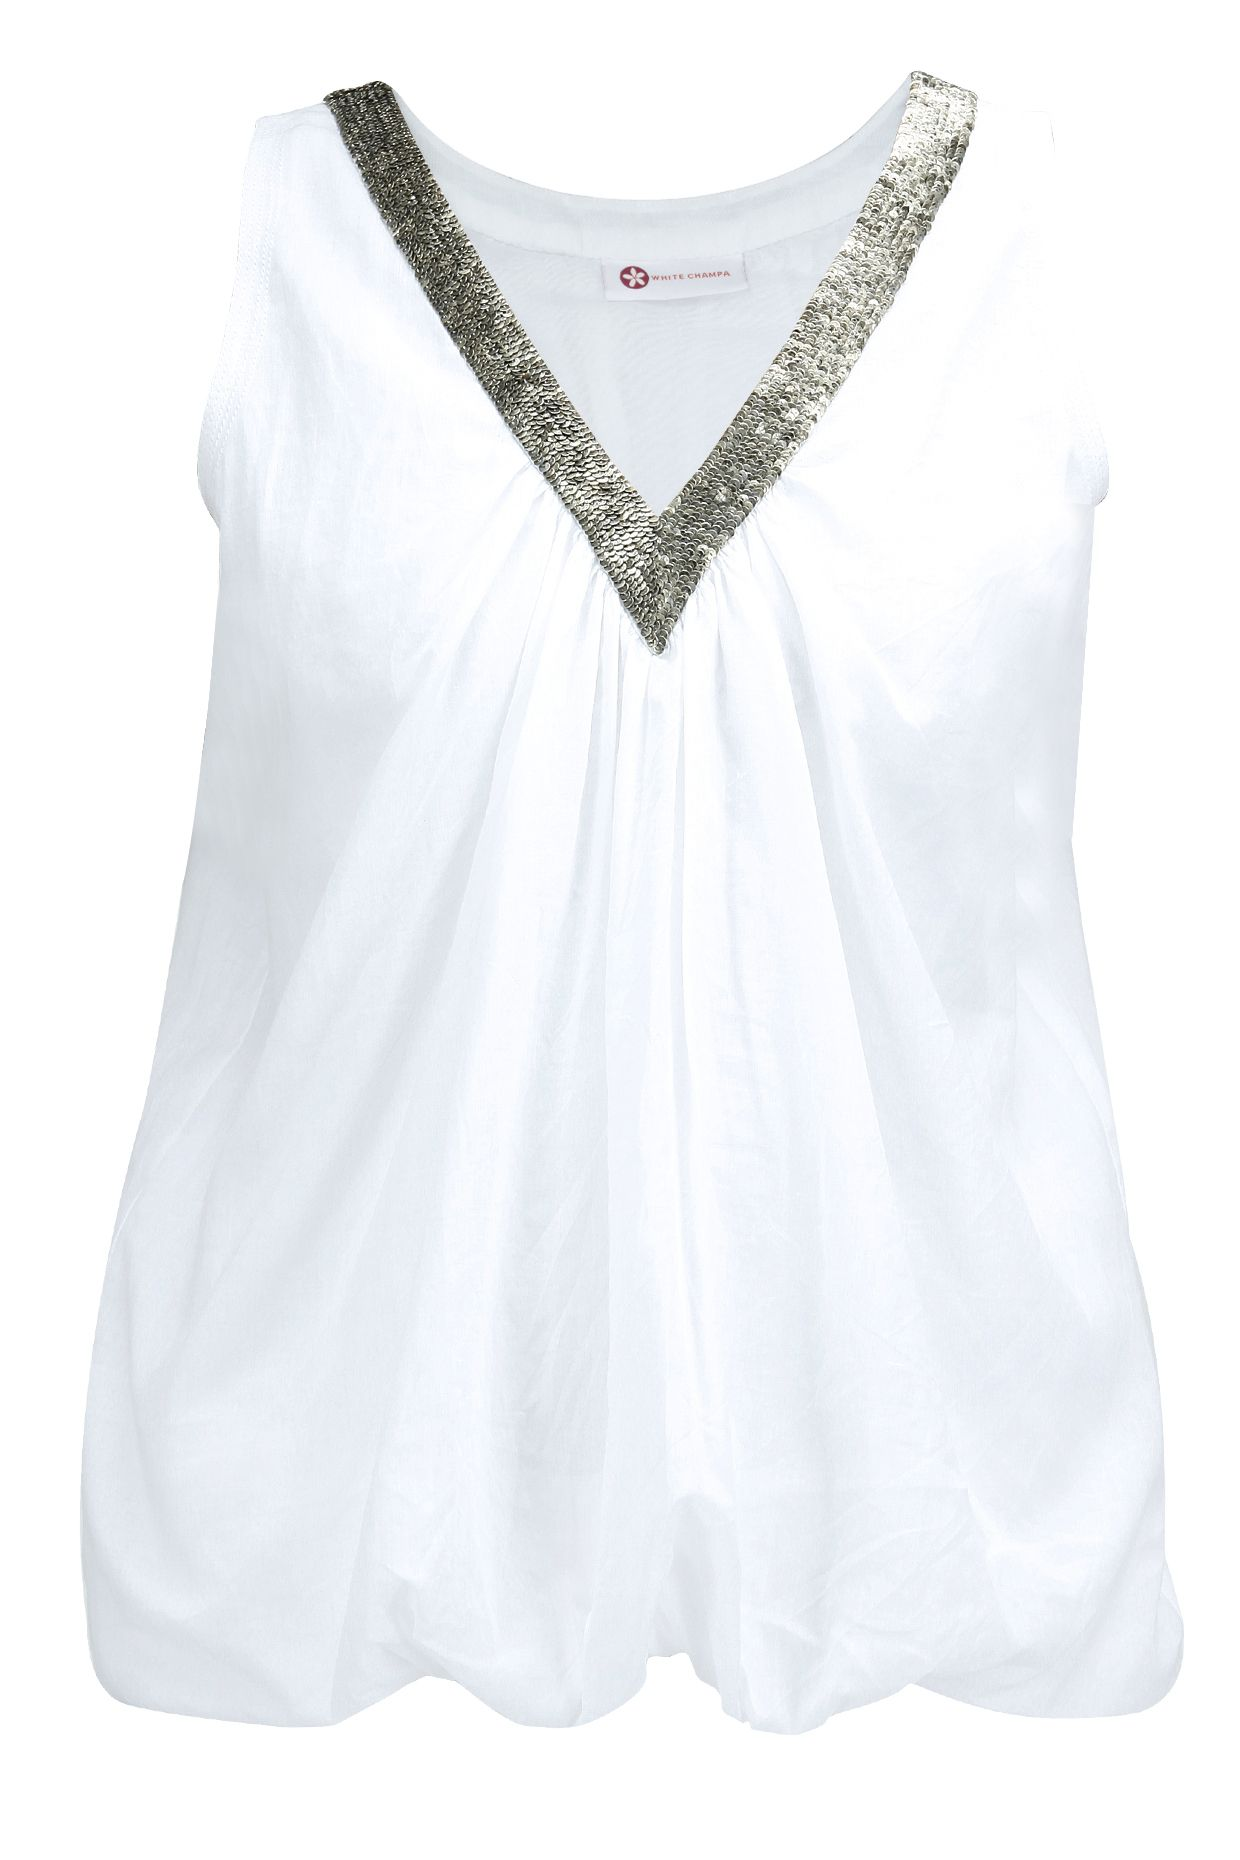 White embroidered bubble top BY WHITE CHAMPA. Shop now at: www.perniaspopups... #perniaspopupshop #whitechampa #eclectic #contemporary #designer #quirky #fun #love #fashion #gorgeous #newdesigner #update #musthave #happyshopping